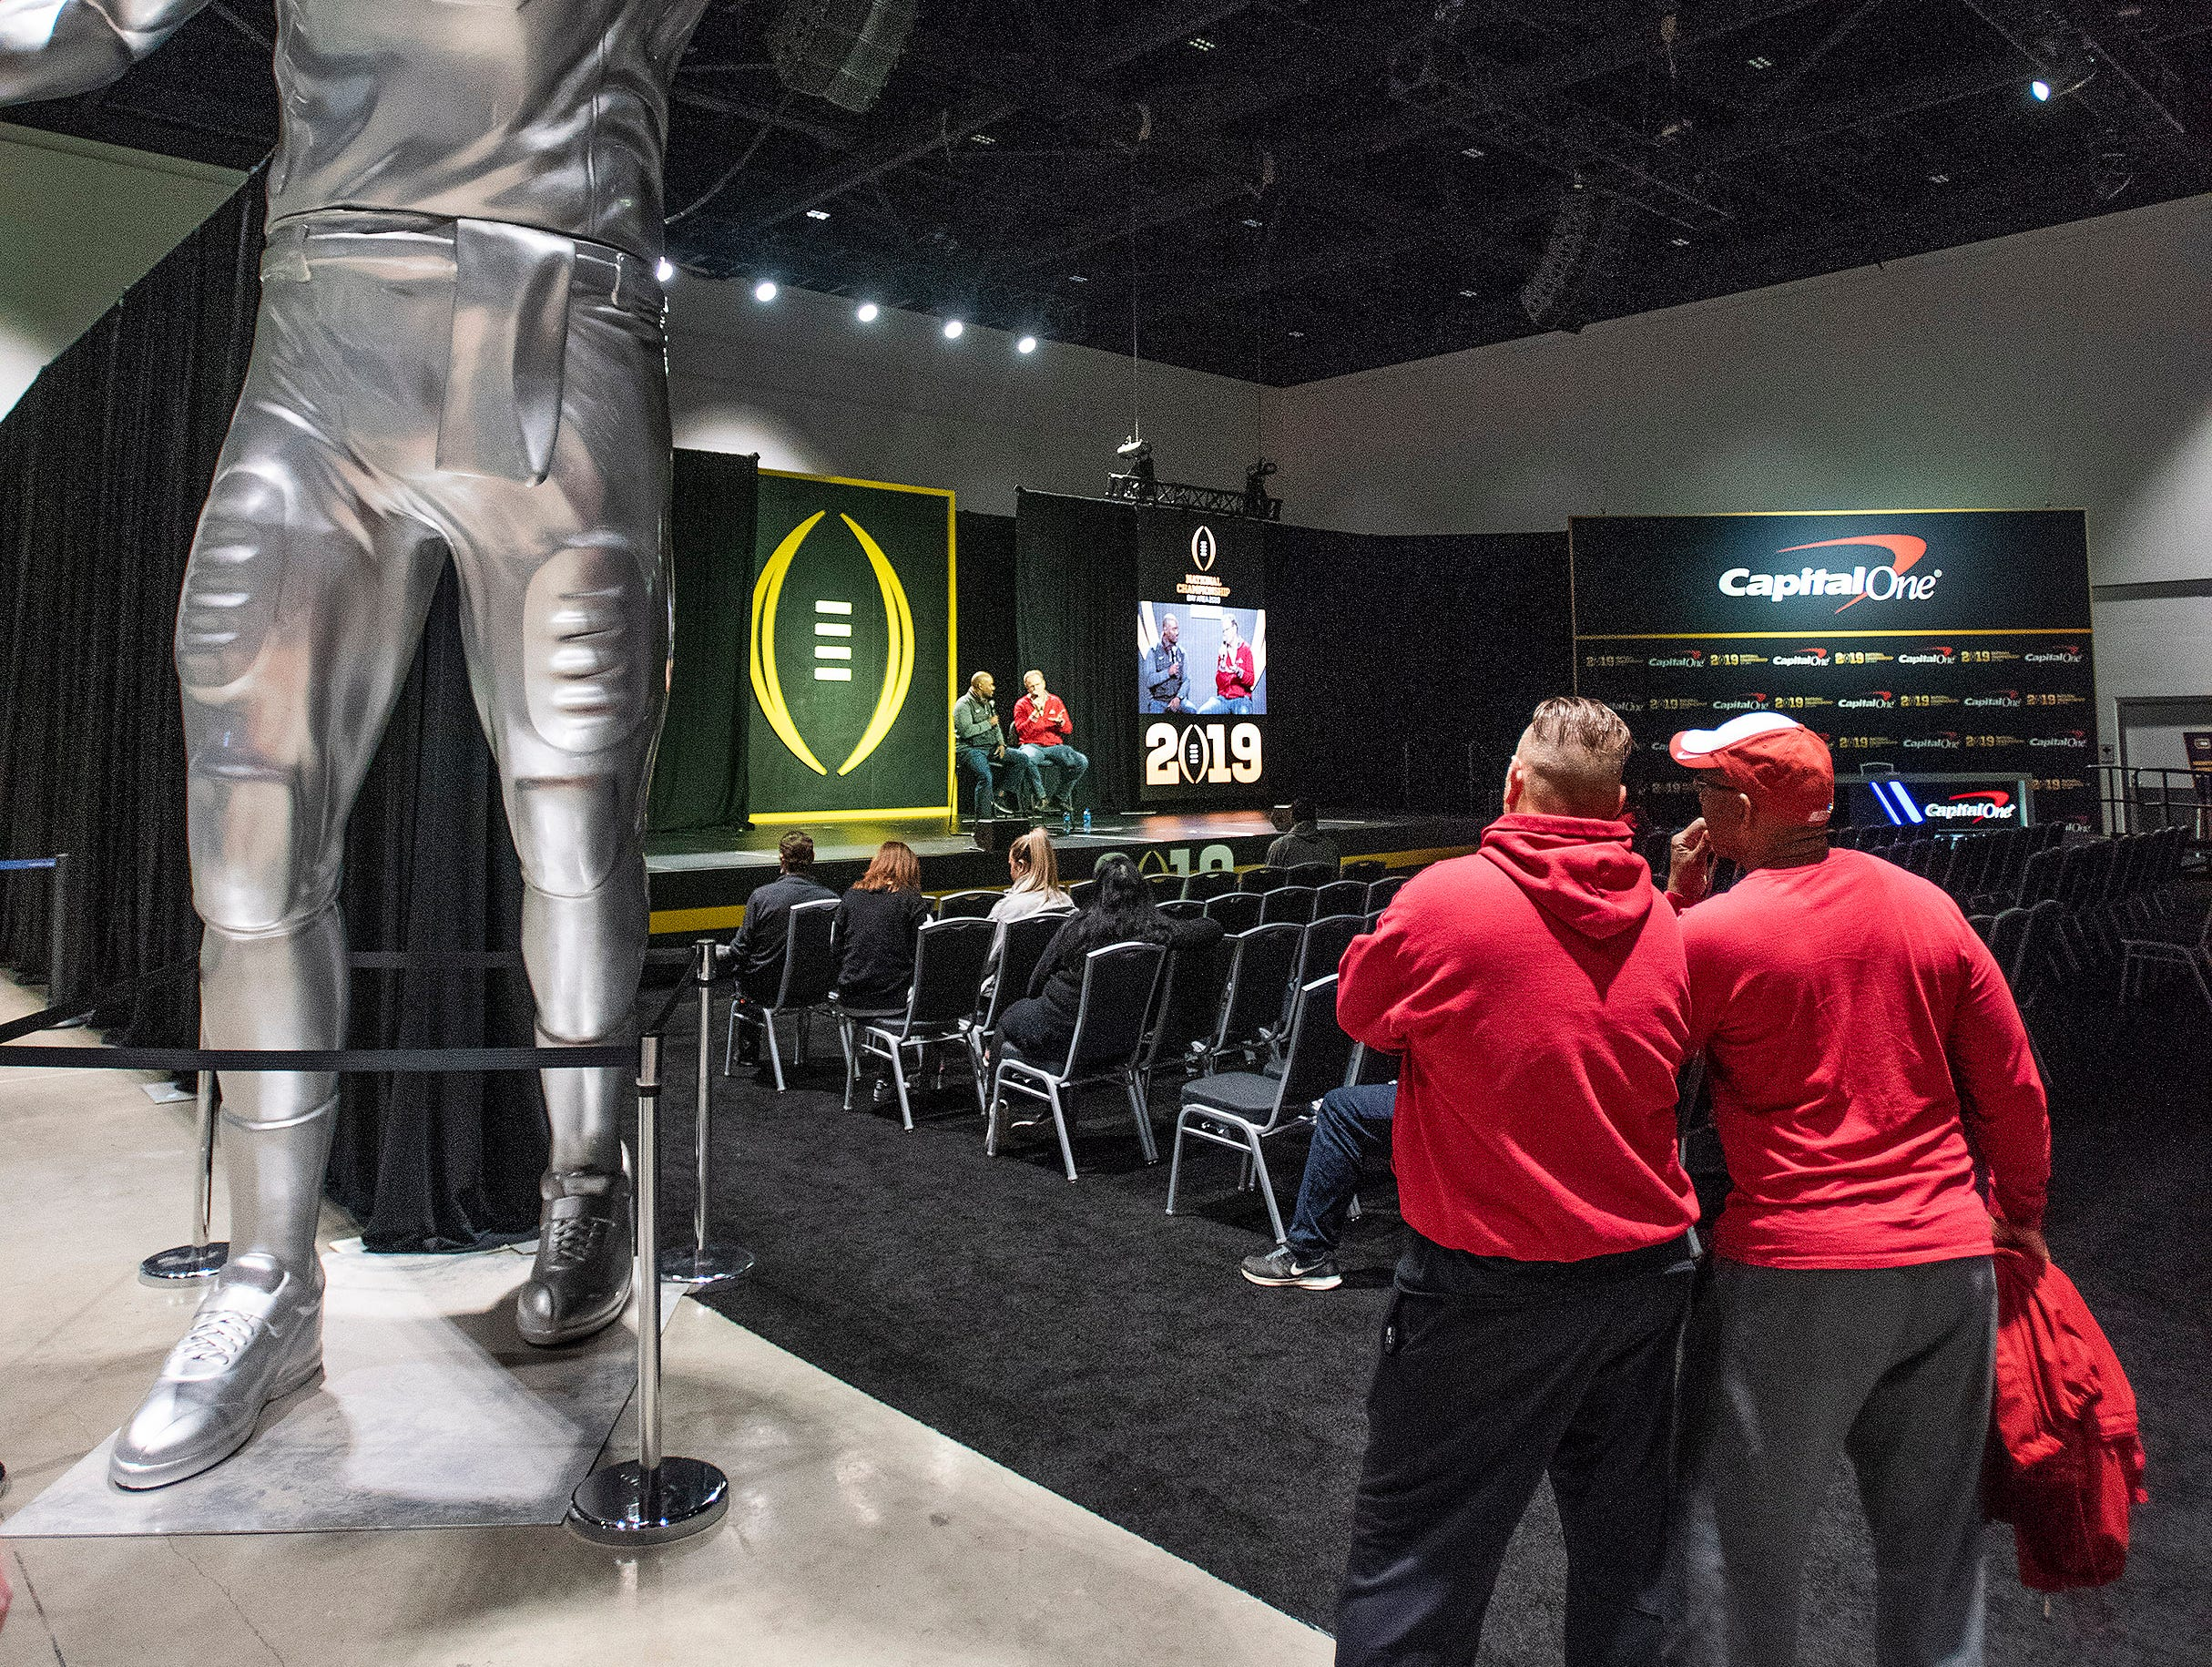 College Football Fans attend Playoff Fan Central at the College Football National Championship in San Jose, Ca., on Sunday January 6, 2019.